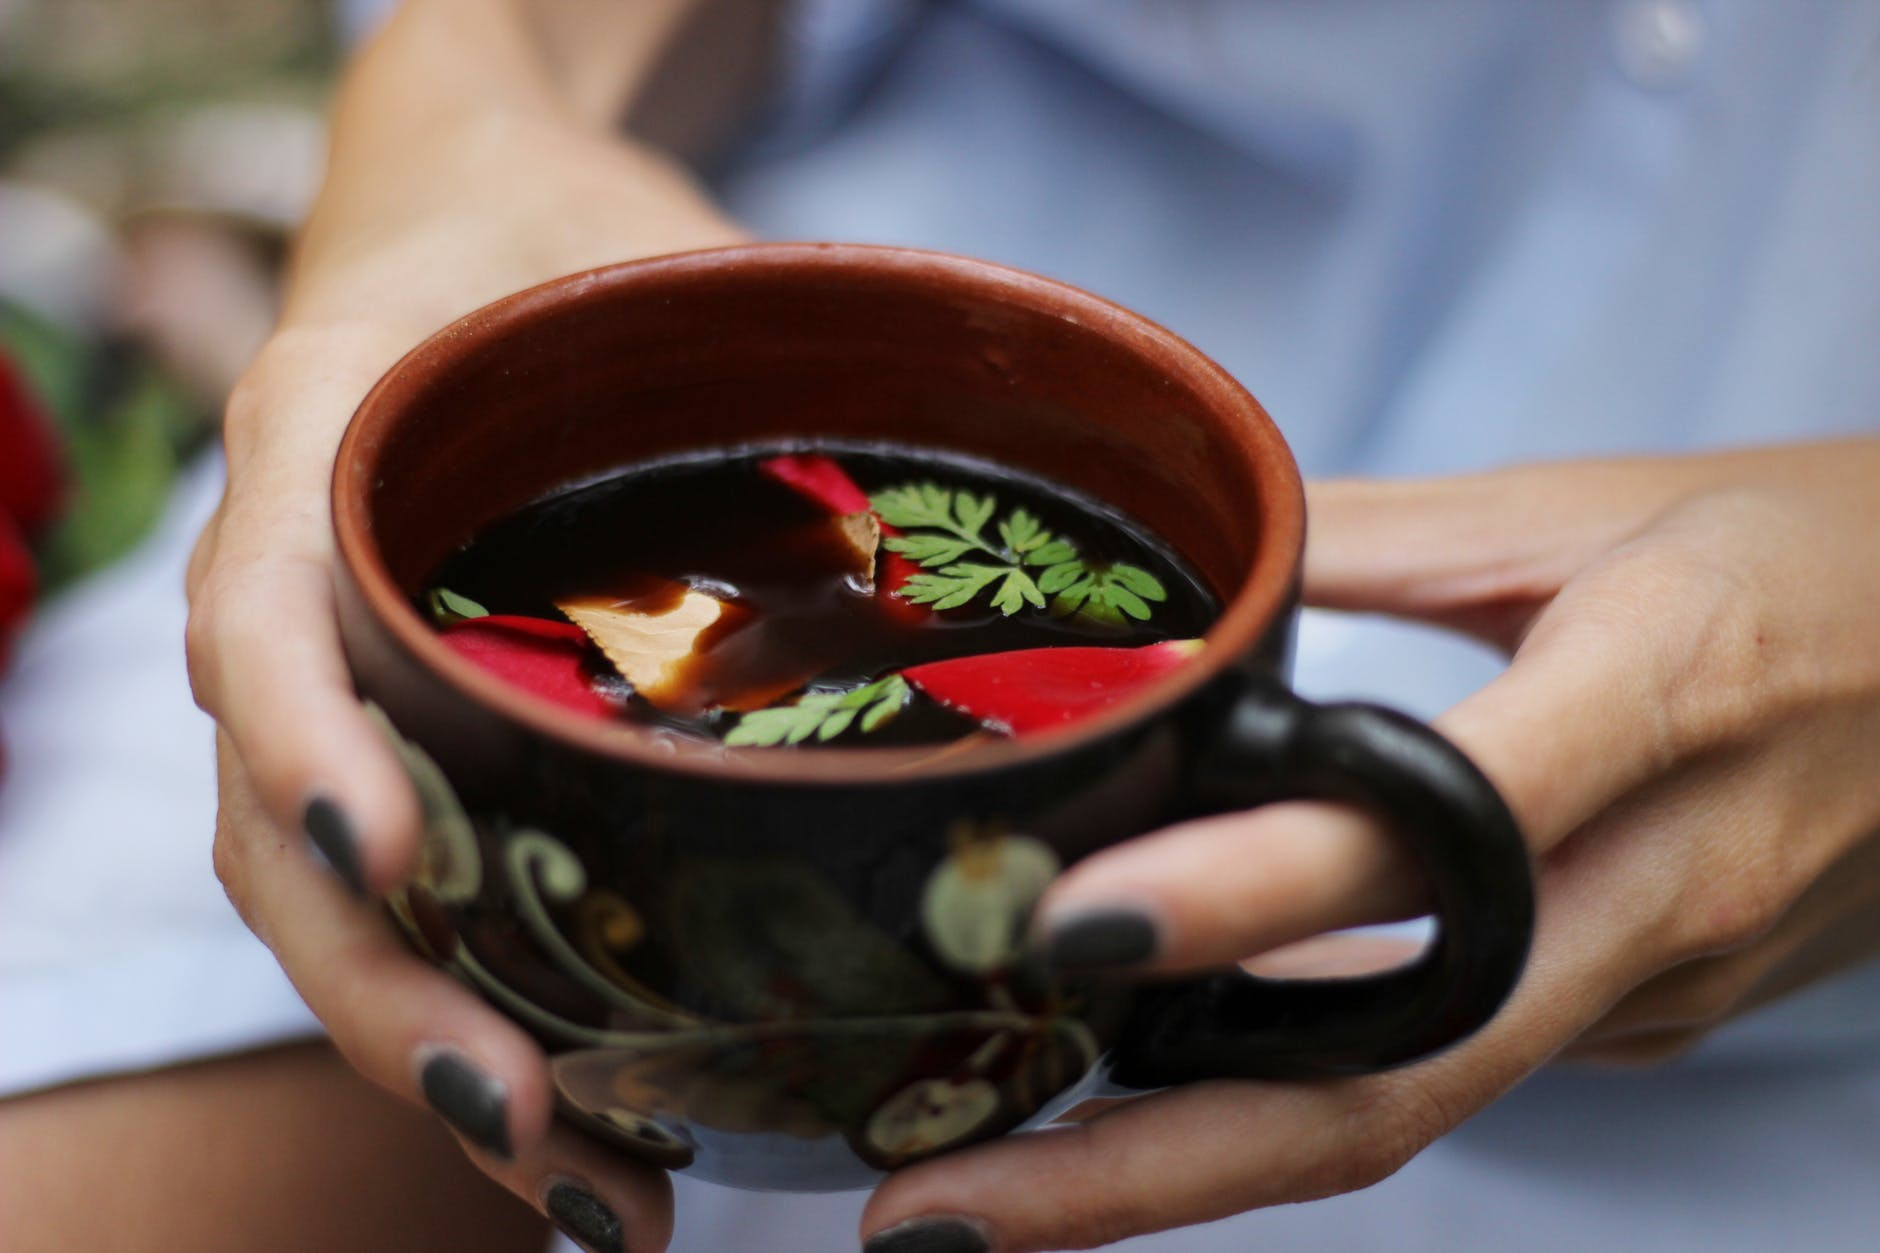 person holding a teacup